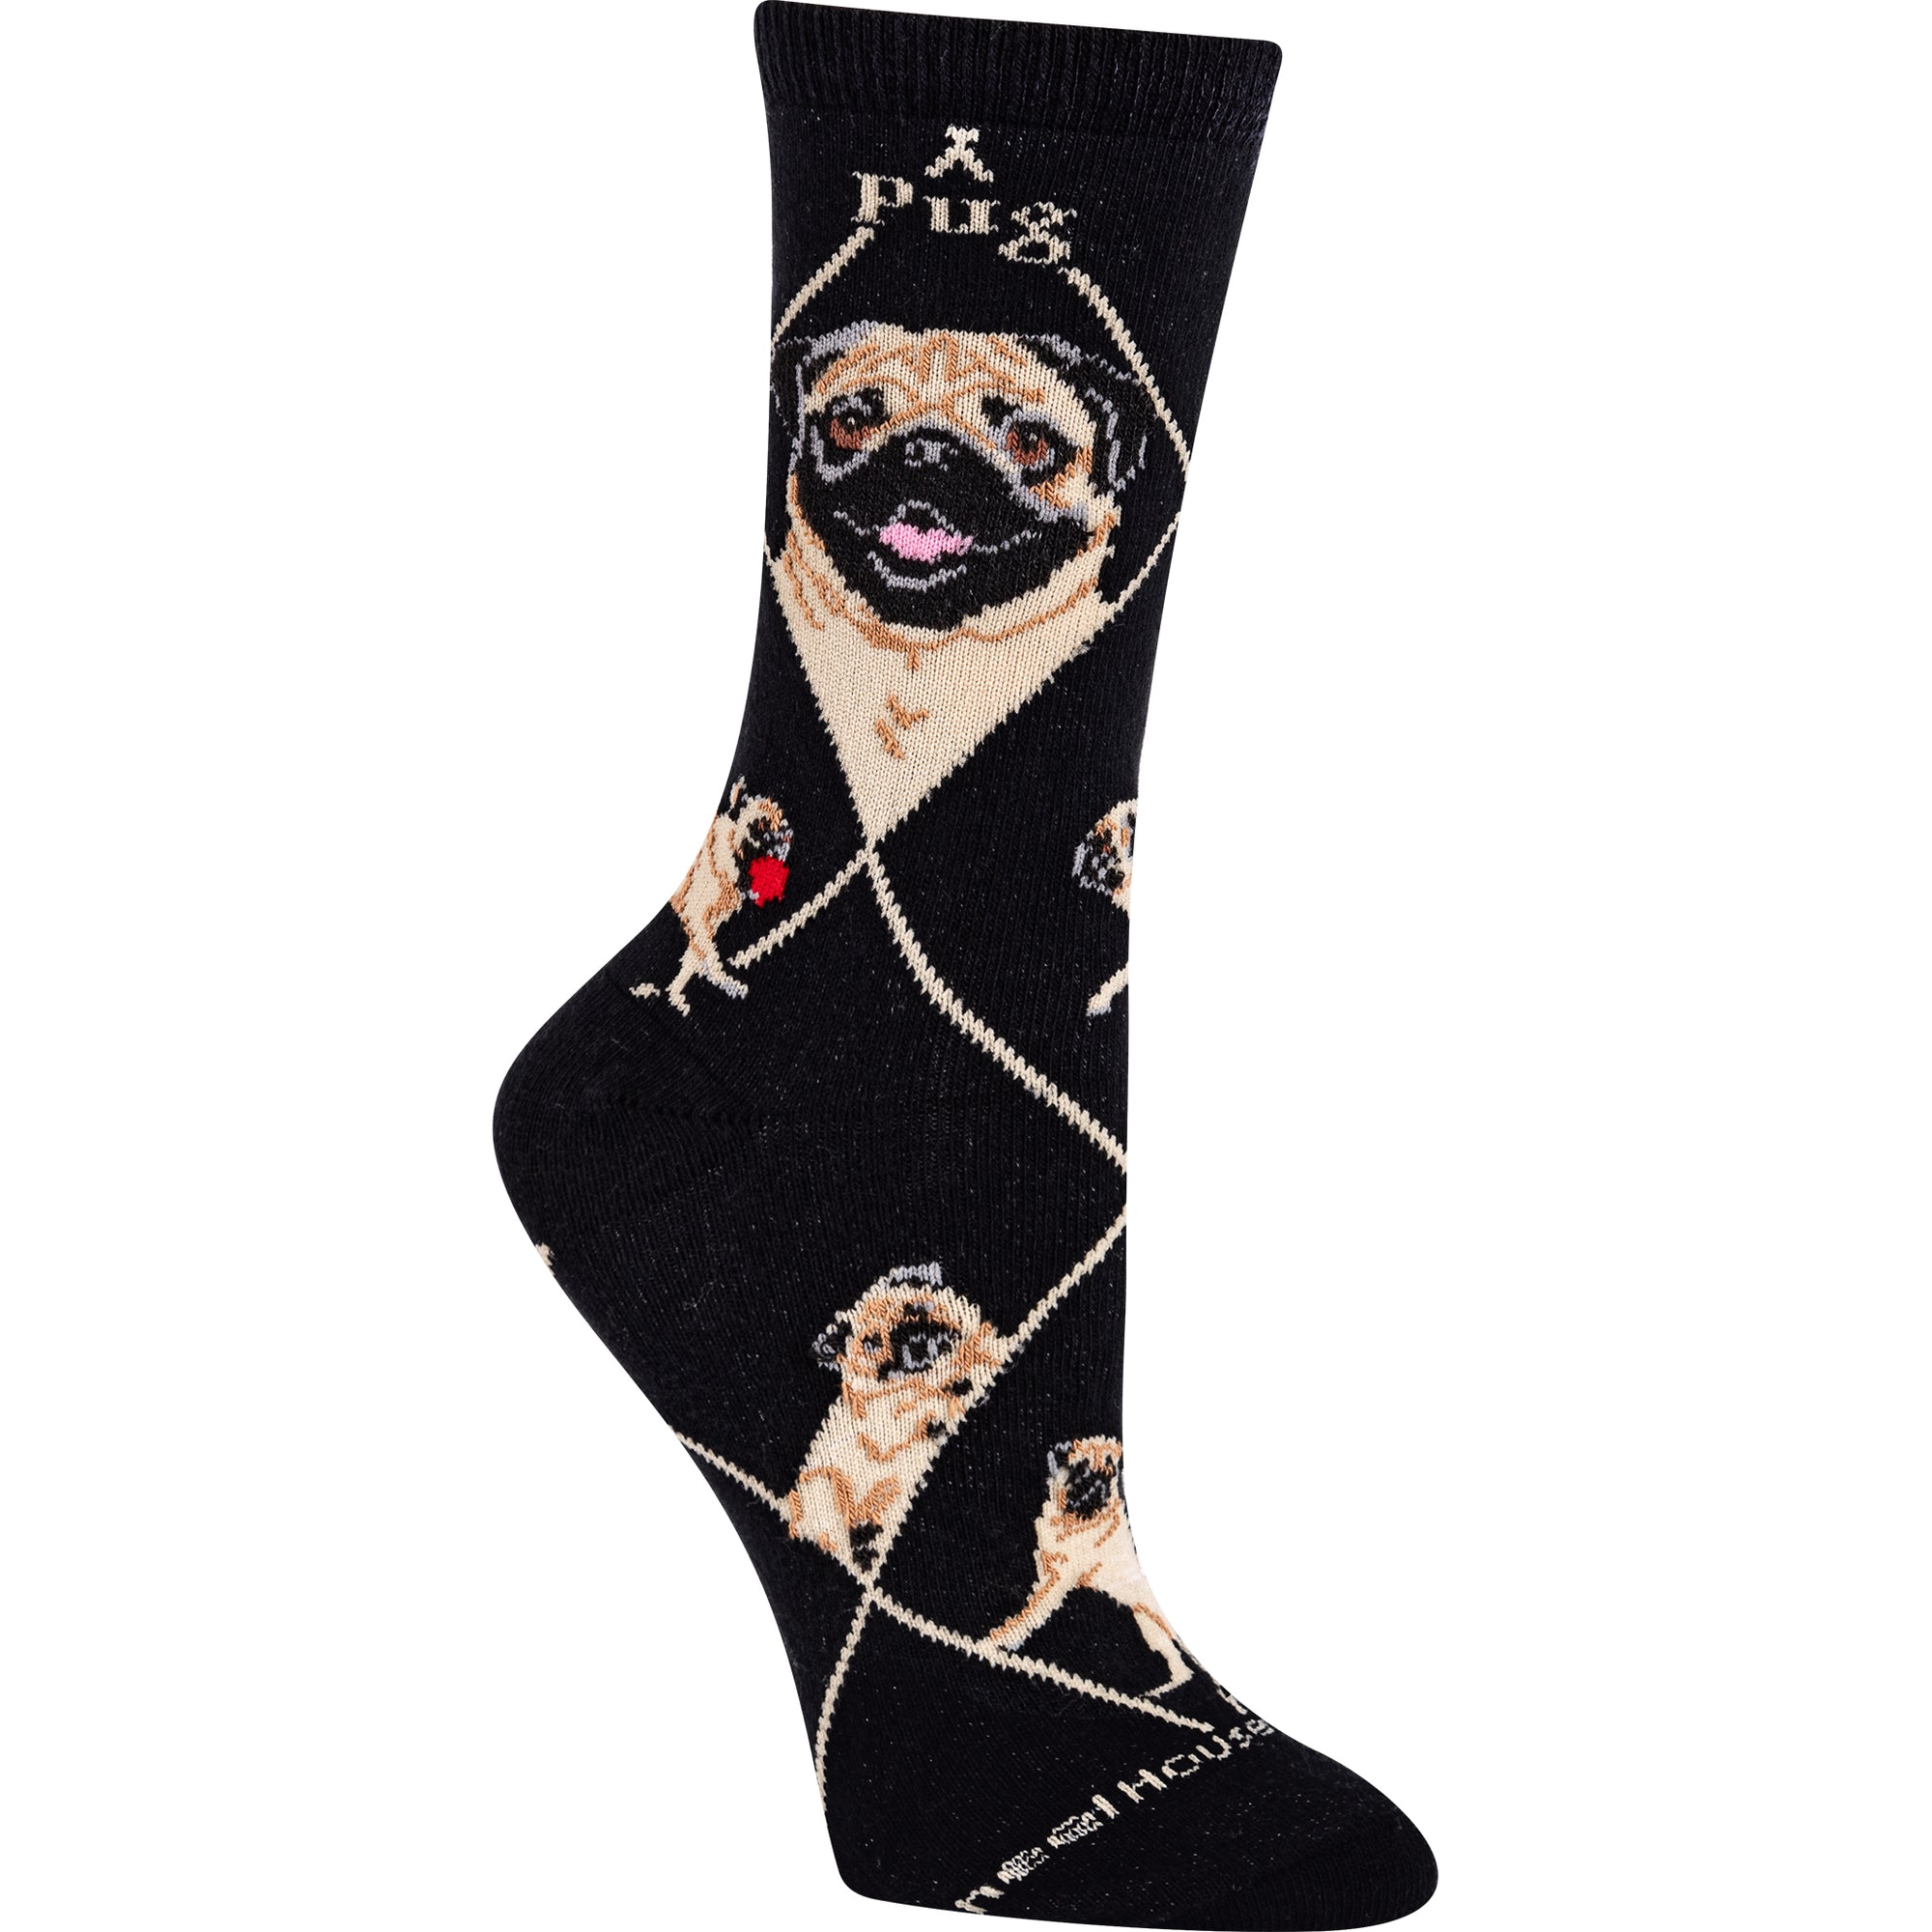 Smiling Pug In Fawn Crew Socks On Black